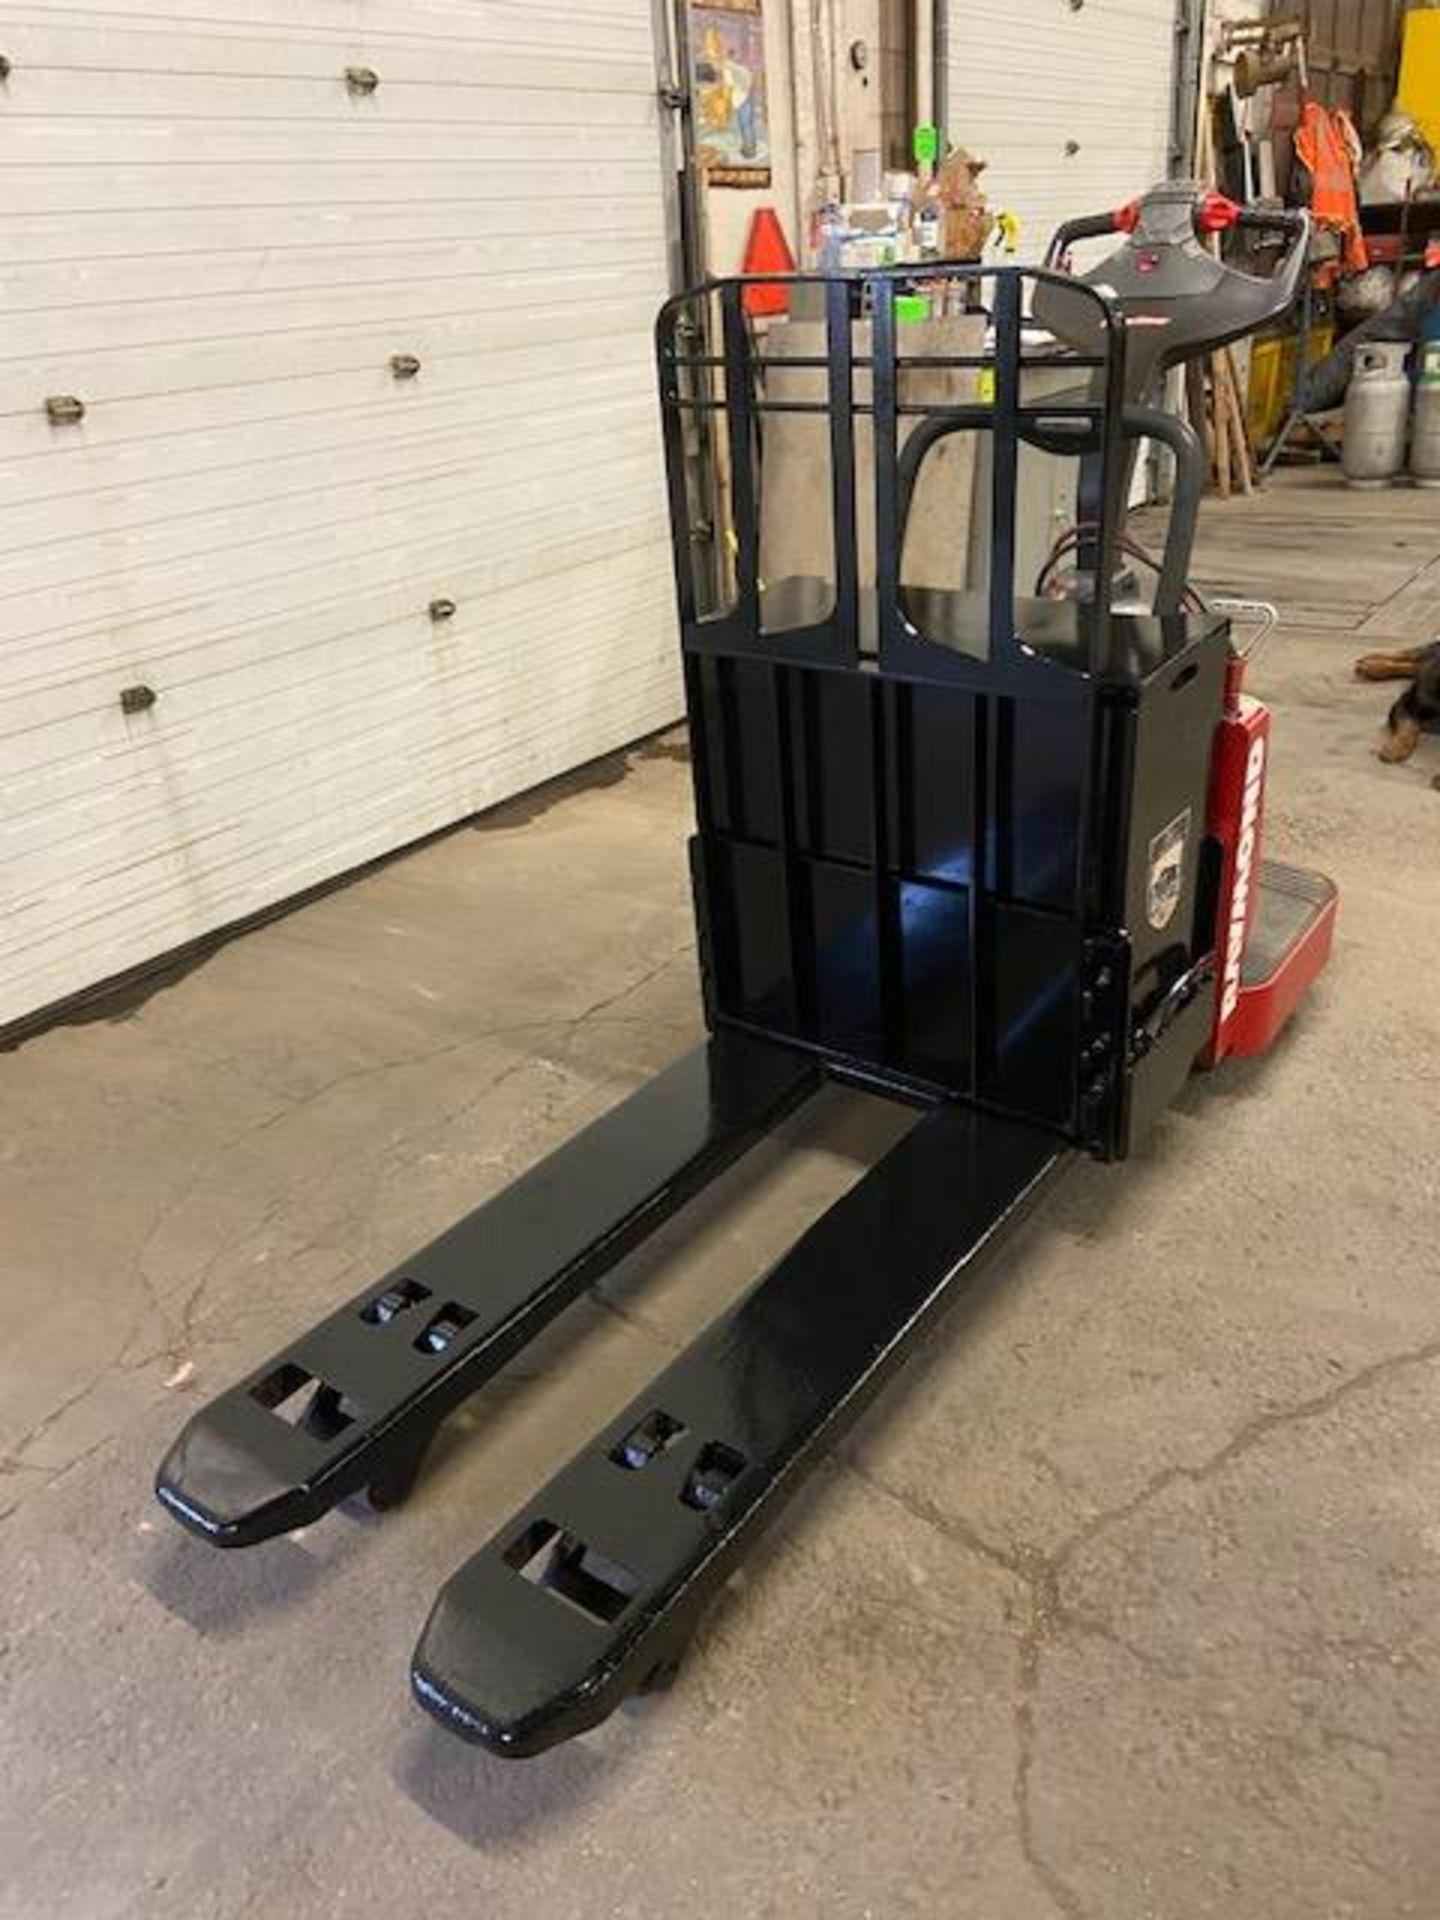 2012 Raymond Electric Ride on Powered Pallet Cart Lift with POWER STEERING 6000lbs capacity 4' - Image 3 of 3